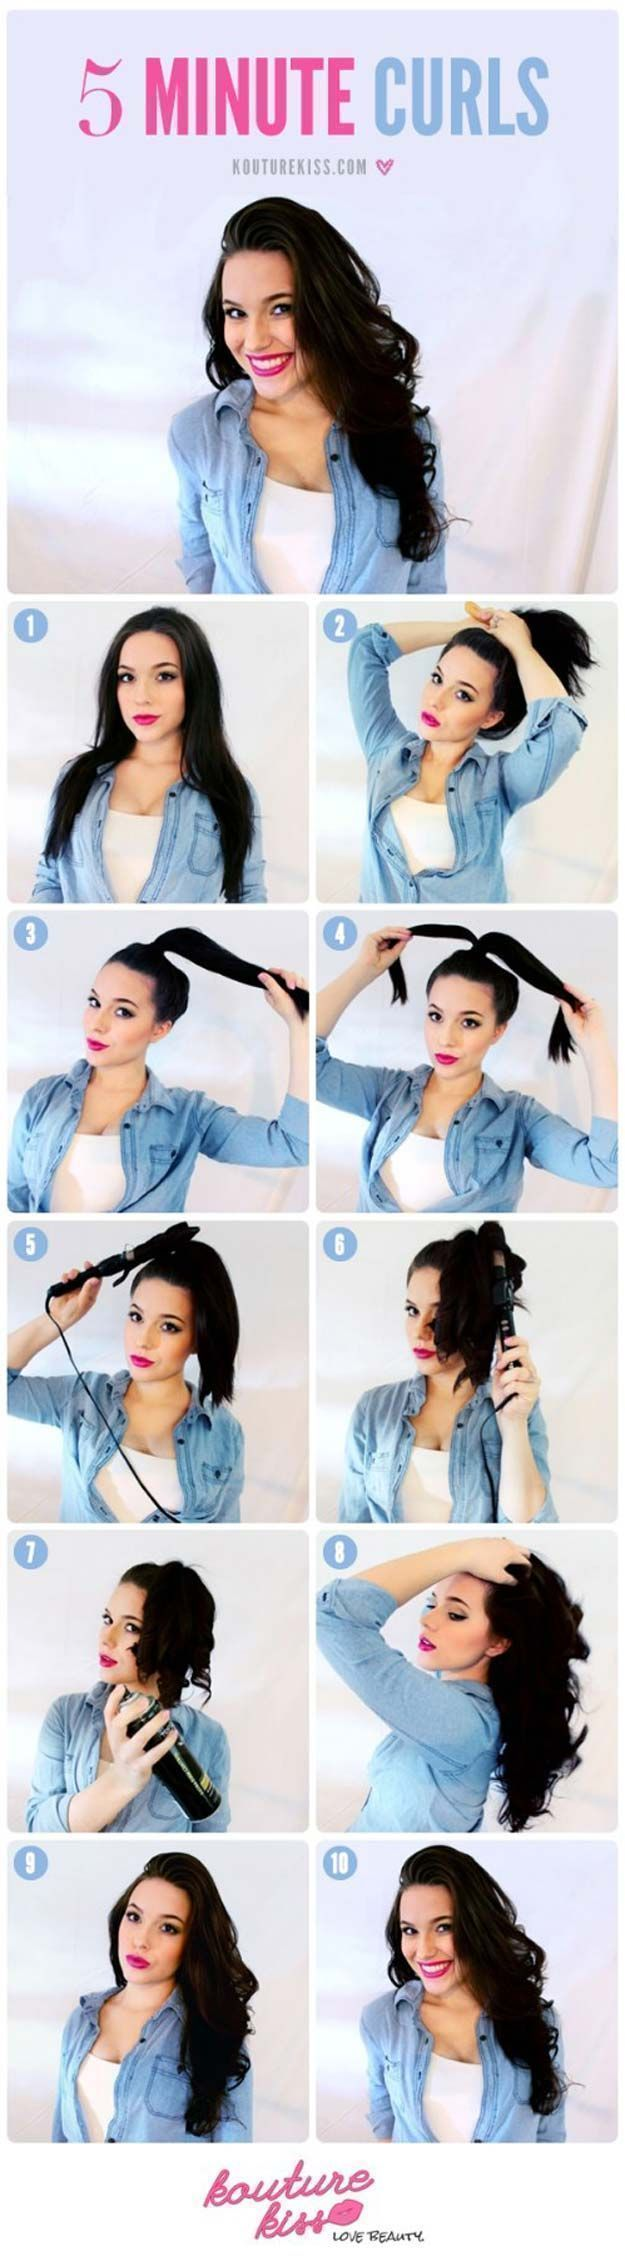 Cool and Easy DIY Hairstyles - 5 Minute Curls - Quick and Easy Ideas for Back to School Styles for Medium, Short and Long Hair - Fun Tips and Best Step by Step Tutorials for Teens, Prom, Weddings, Special Occasions and Work. Up dos, Braids, Top Knots and Buns, Super Summer Looks http://diyprojectsforteens.com/diy-cool-easy-hairstyles #diyhairstylesforschool #diyhairstylesstepbystep #diyhairstylescurls #weddinghairdosforlonghair